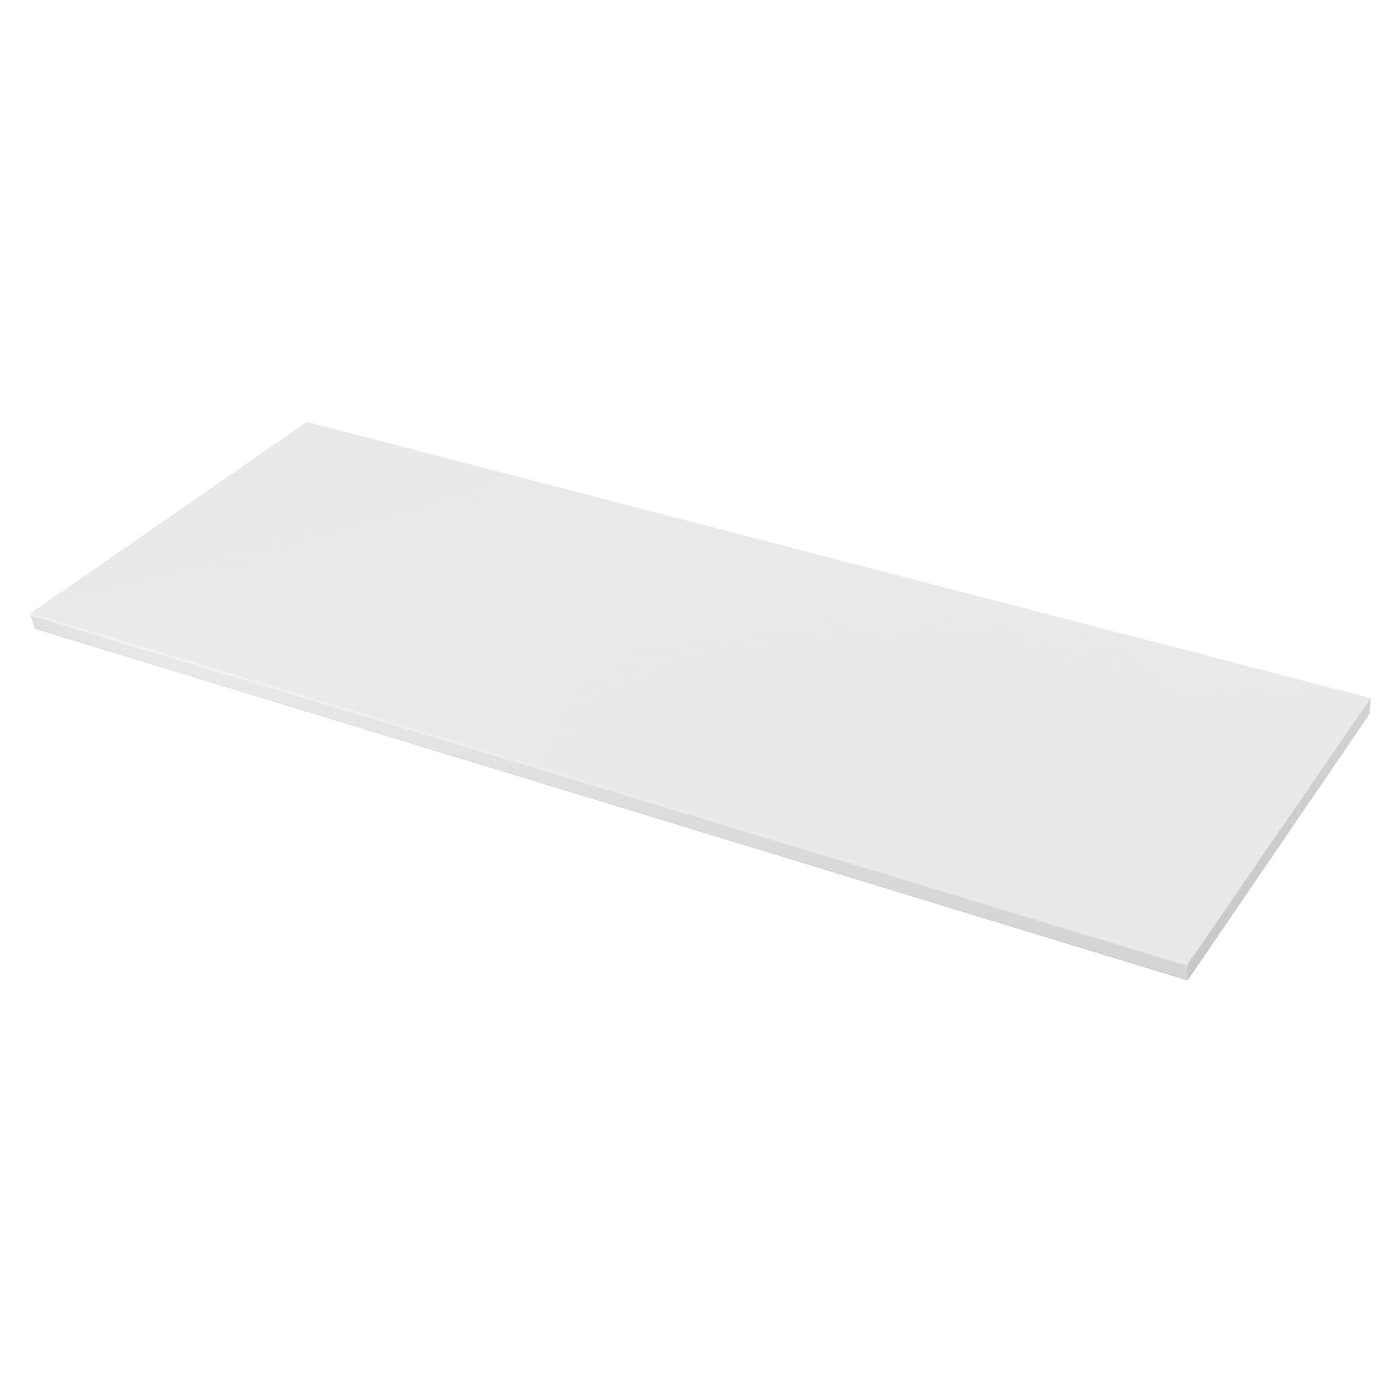 Ekbacken worktop double sided light grey white with white for Table inox ikea